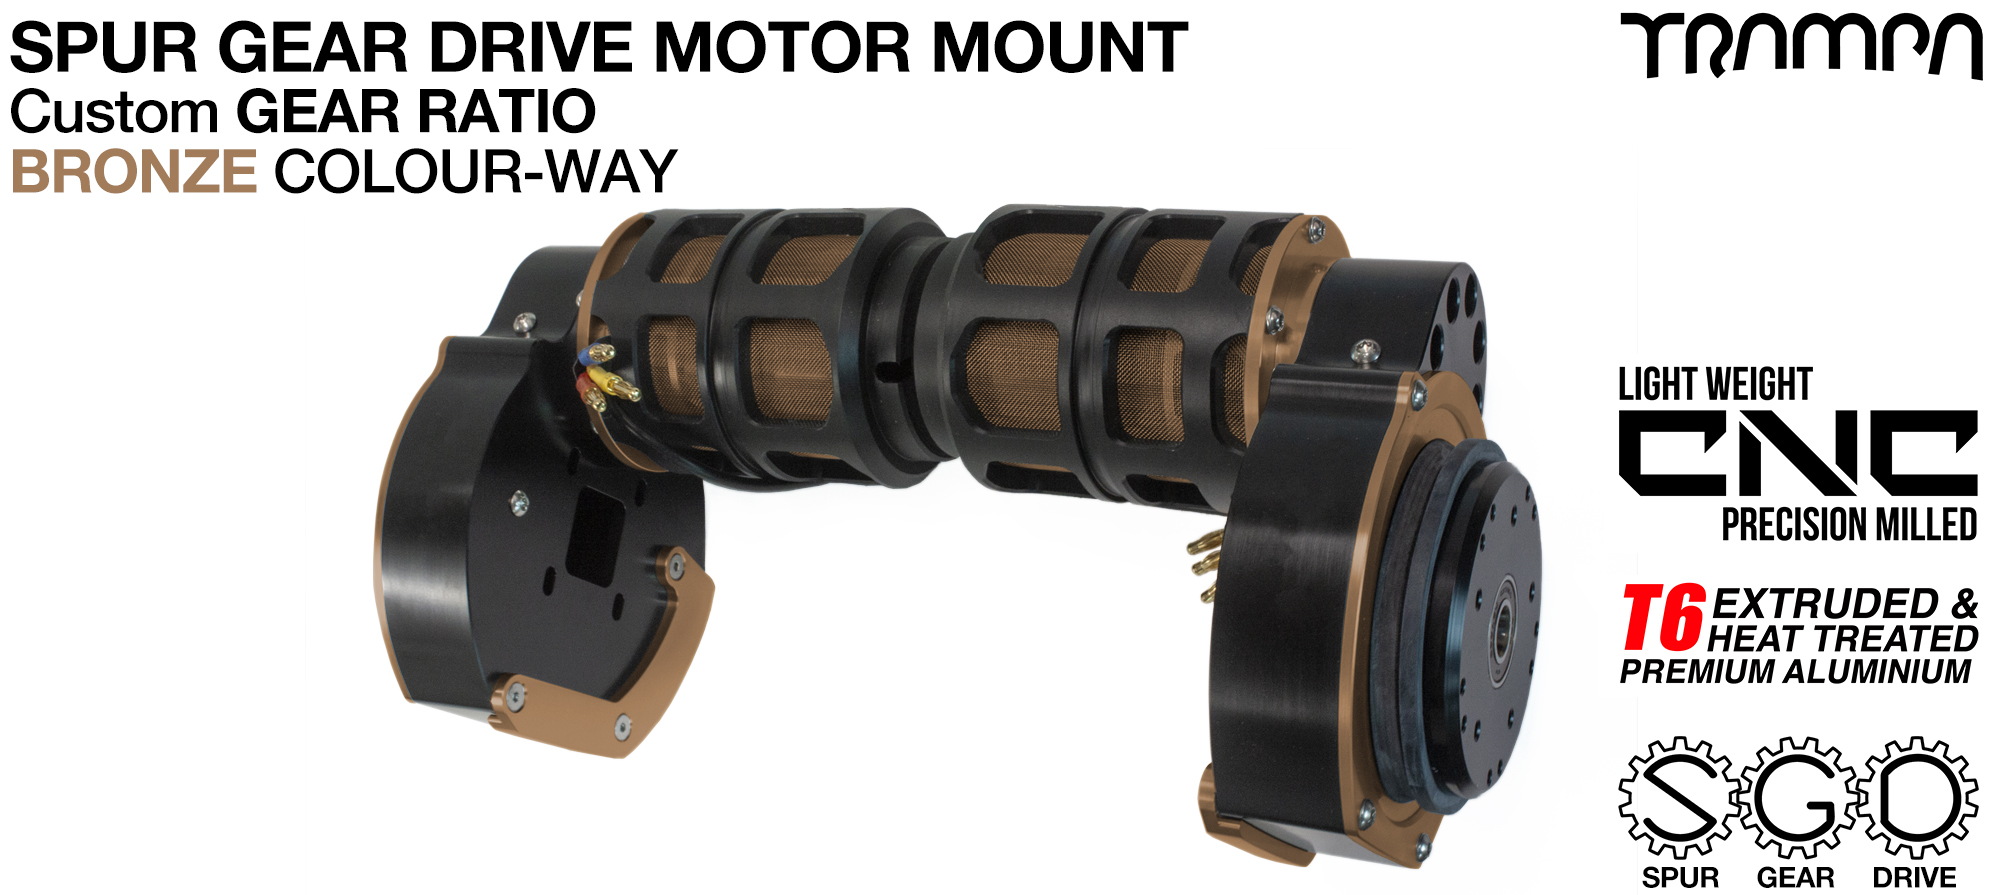 Mountainboard Spur Gear Drive TWIN Motor Mount - BRONZE